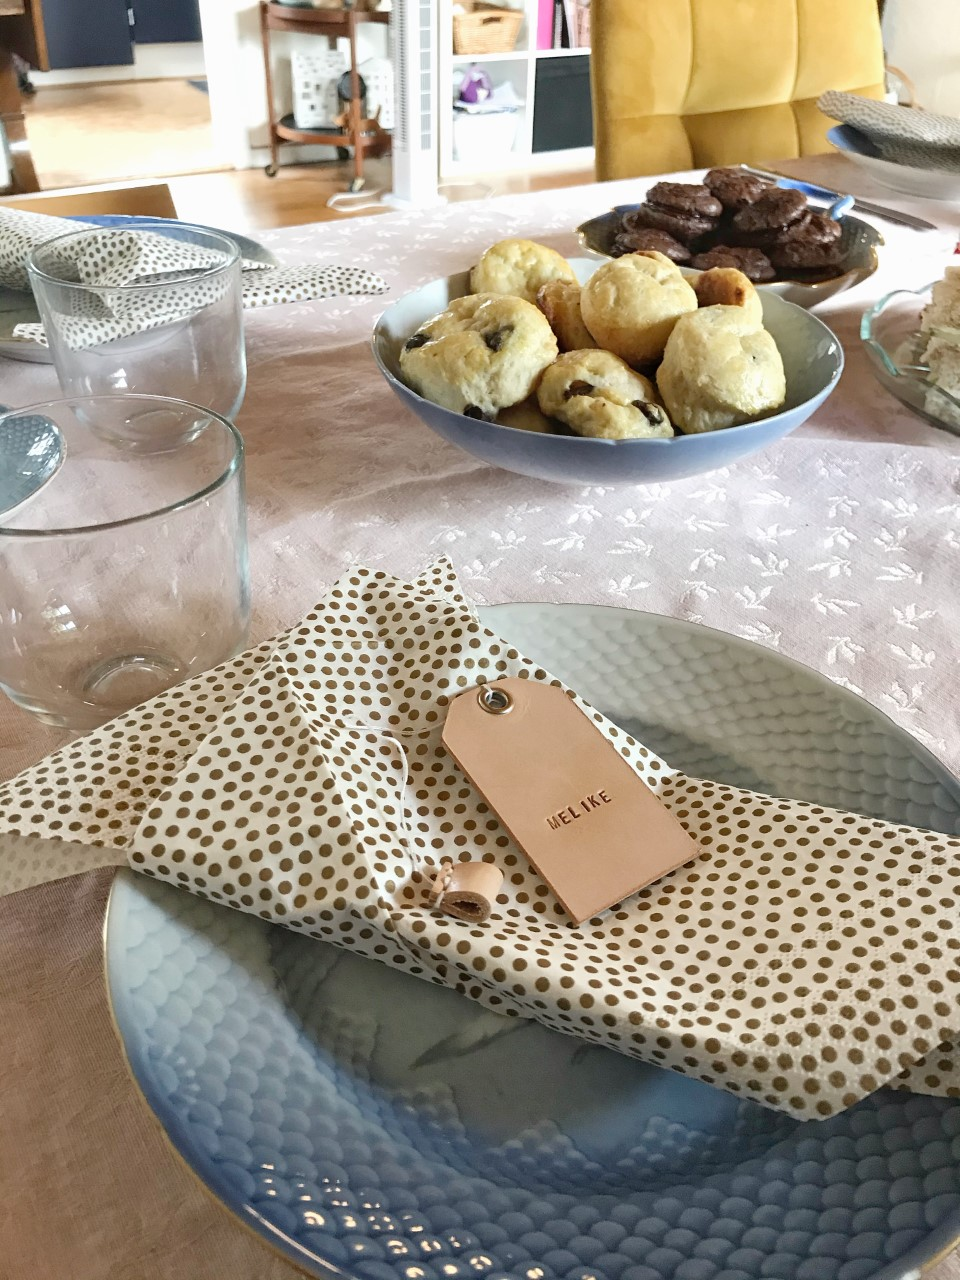 bordkort, læderbordkort, lædertag, tag, bagagemærke, rejsemærke, borddækning, placecards, bordpynt, afternoon tea